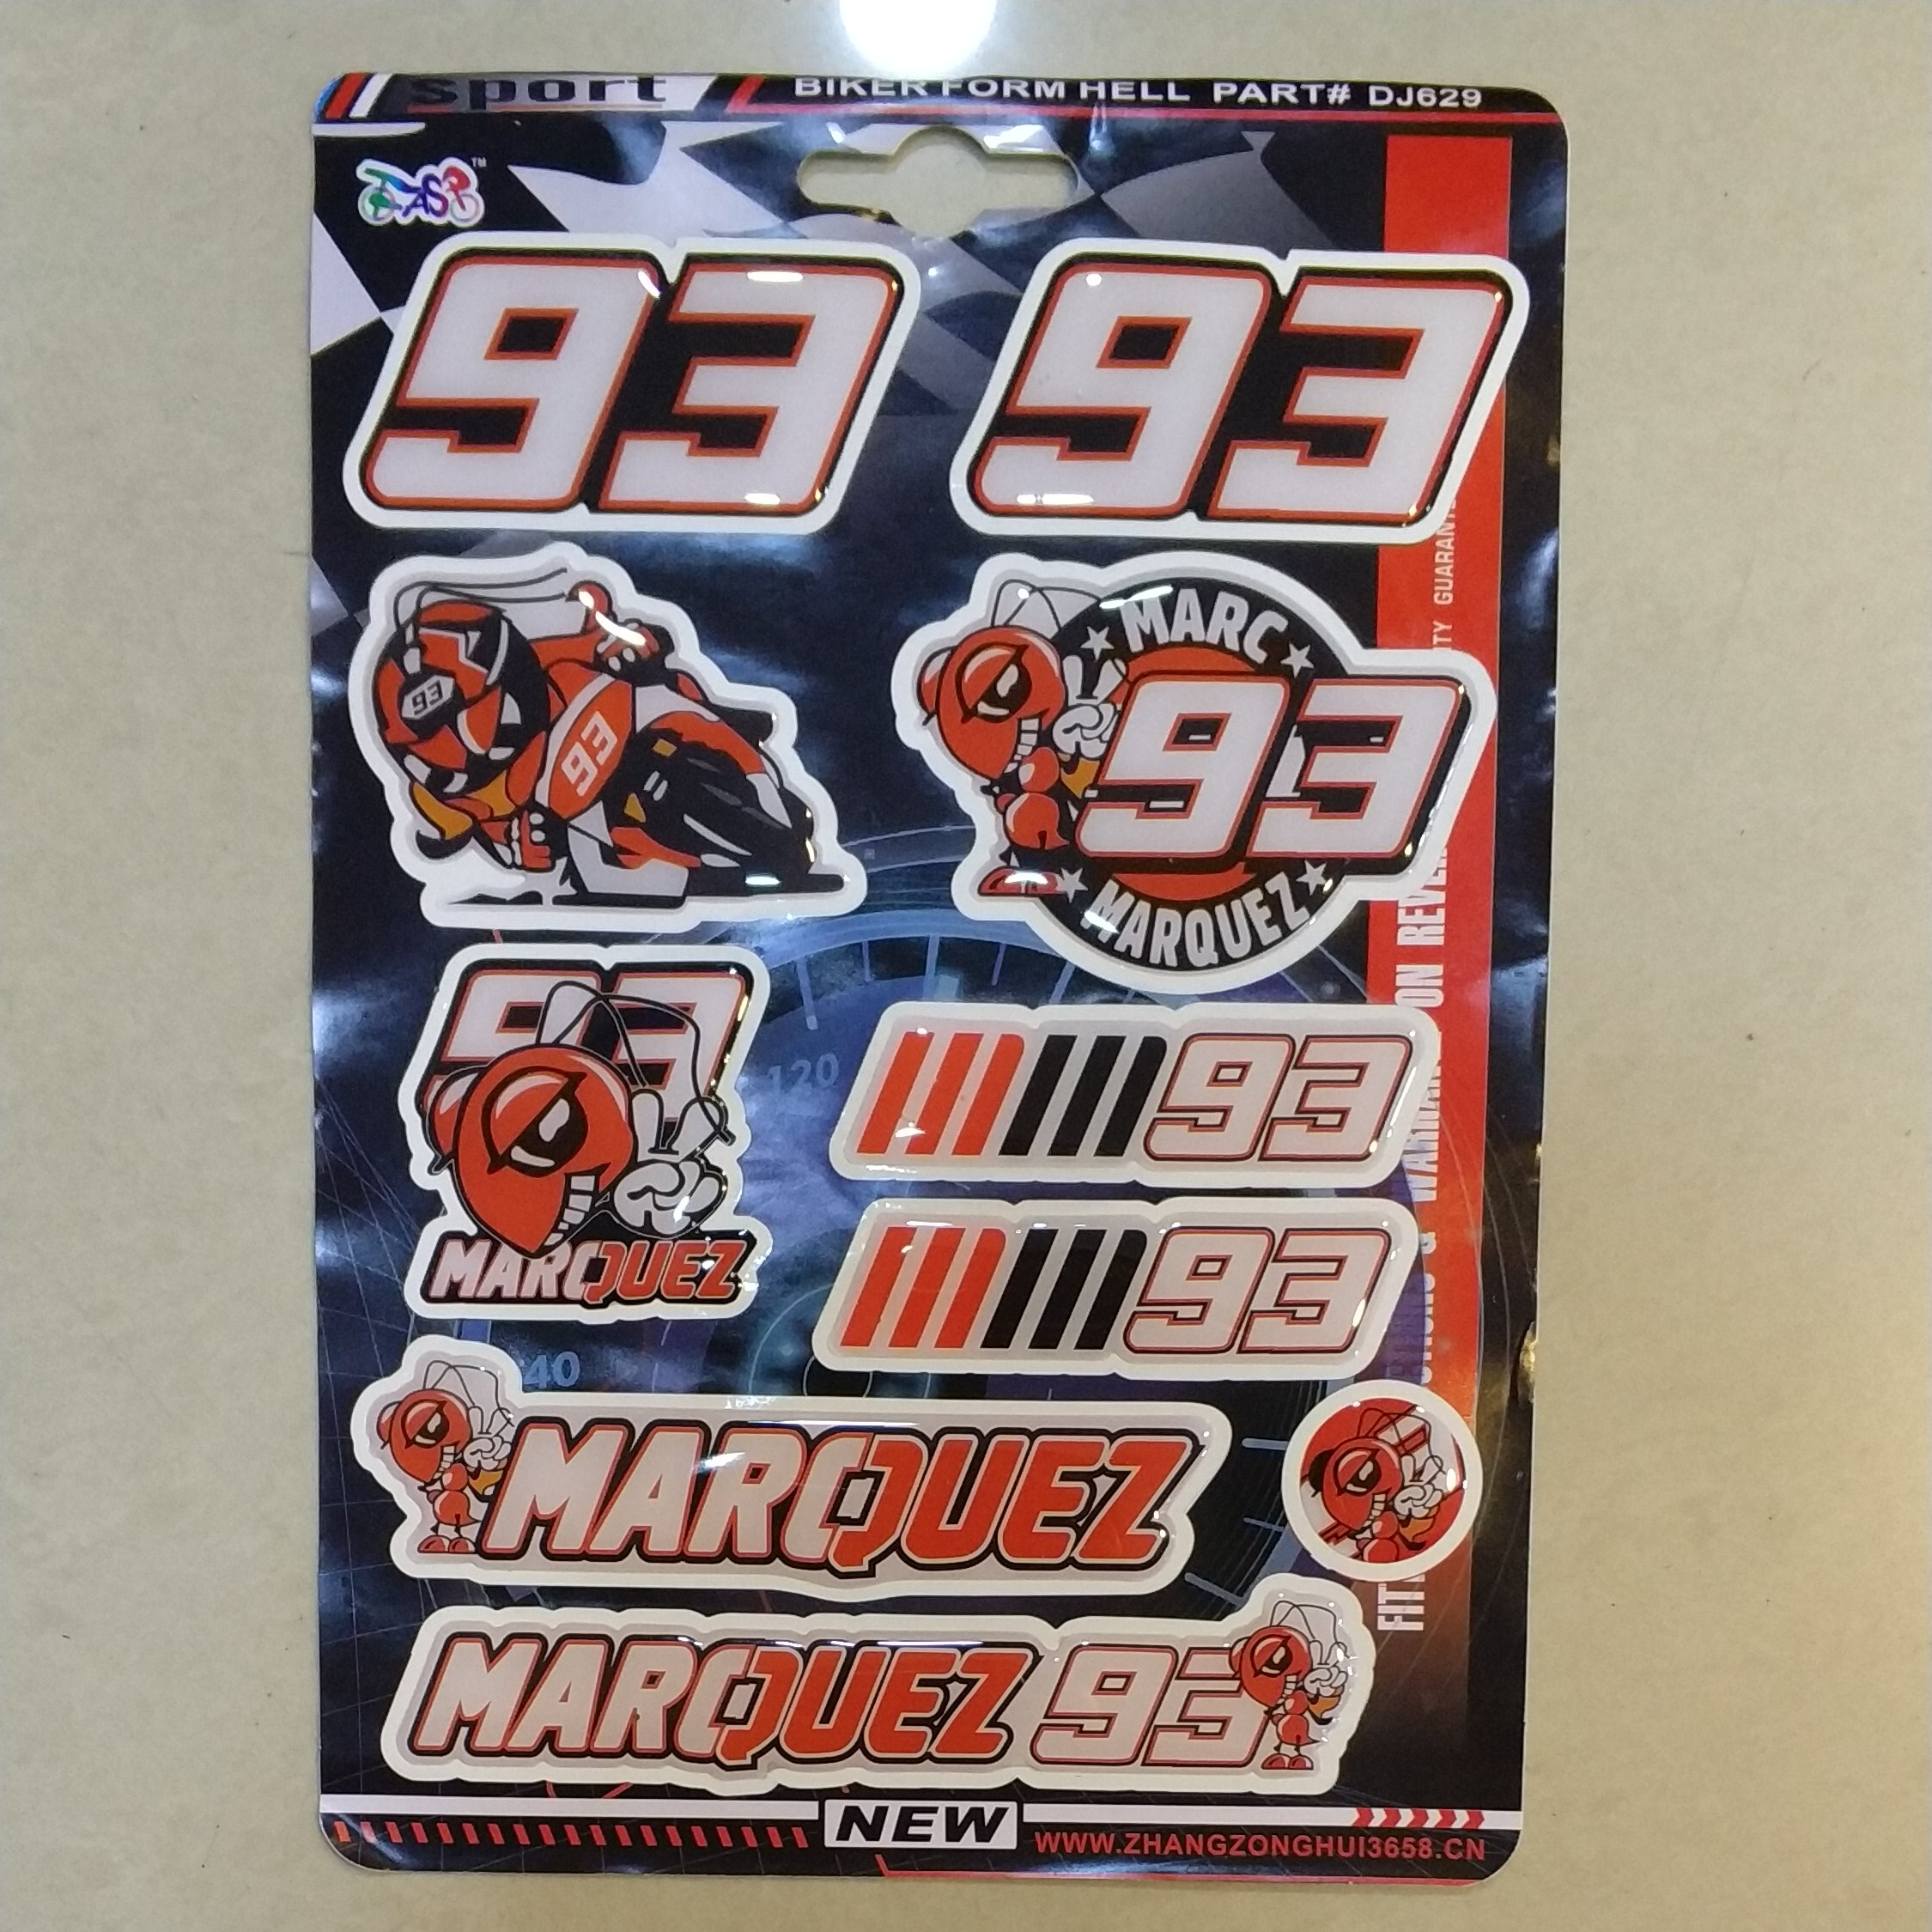 New Resin Gel Motorcycle Applique #93 MARQUEZ Fan Sticker Super Cool Personal Decal edith marquez feria juarez